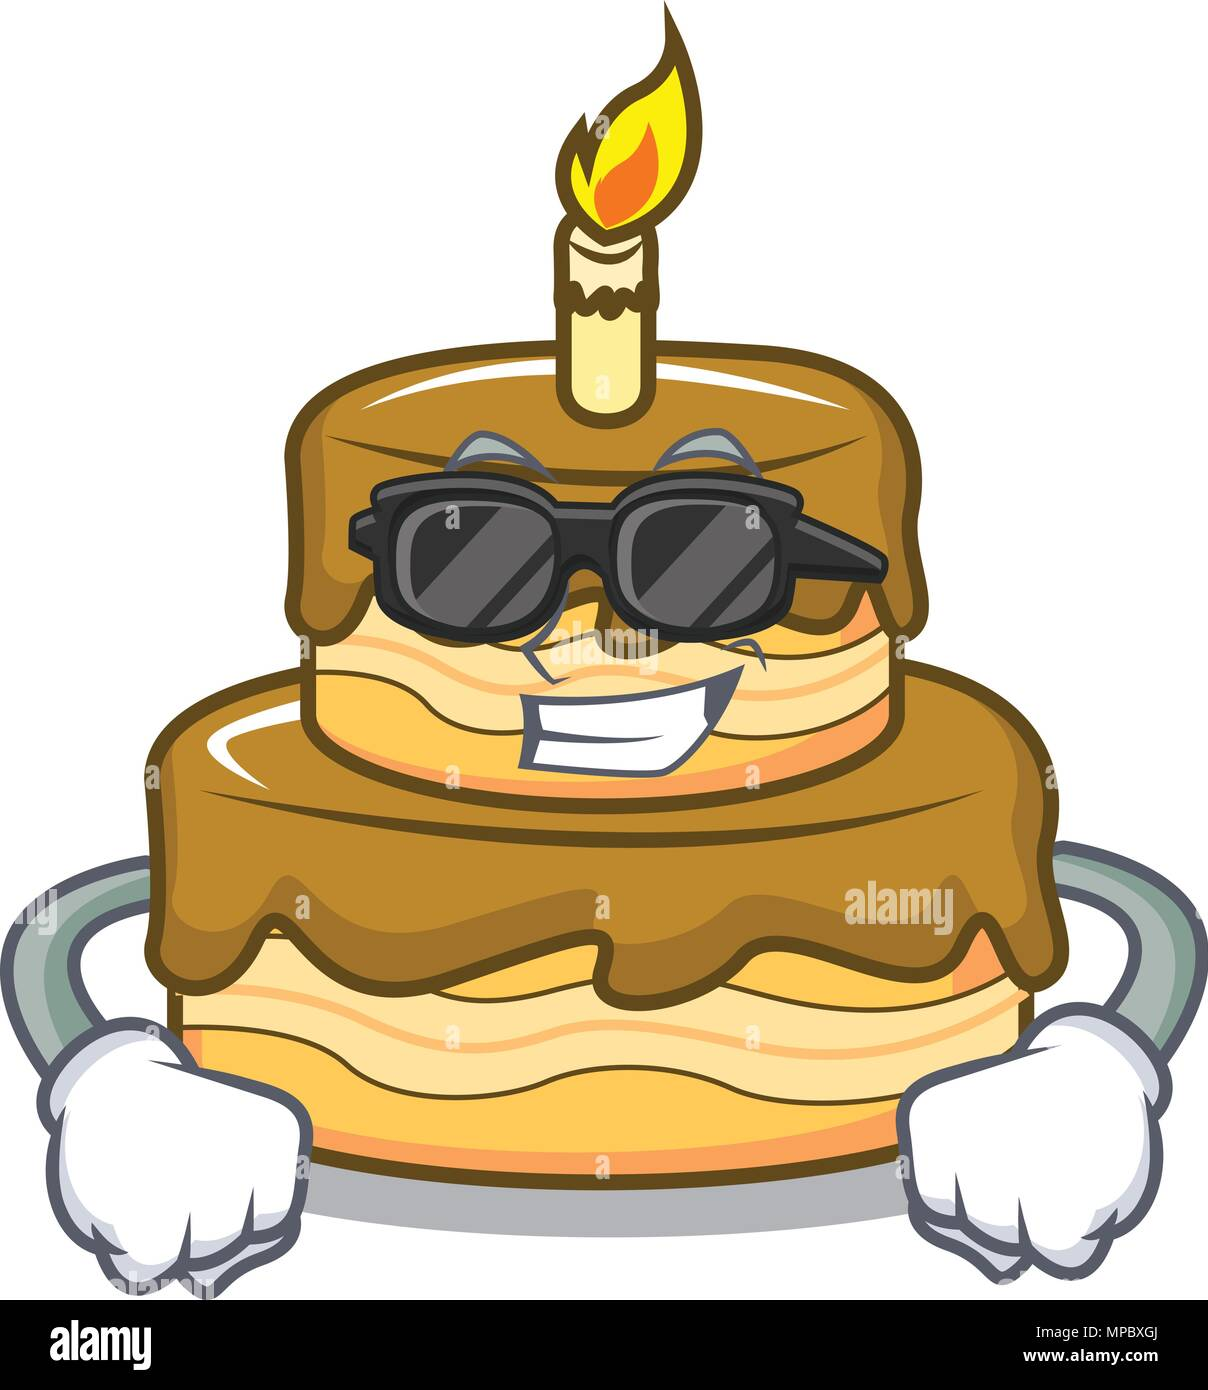 Enjoyable Super Cool Birthday Cake Character Cartoon Stock Vector Art Funny Birthday Cards Online Fluifree Goldxyz